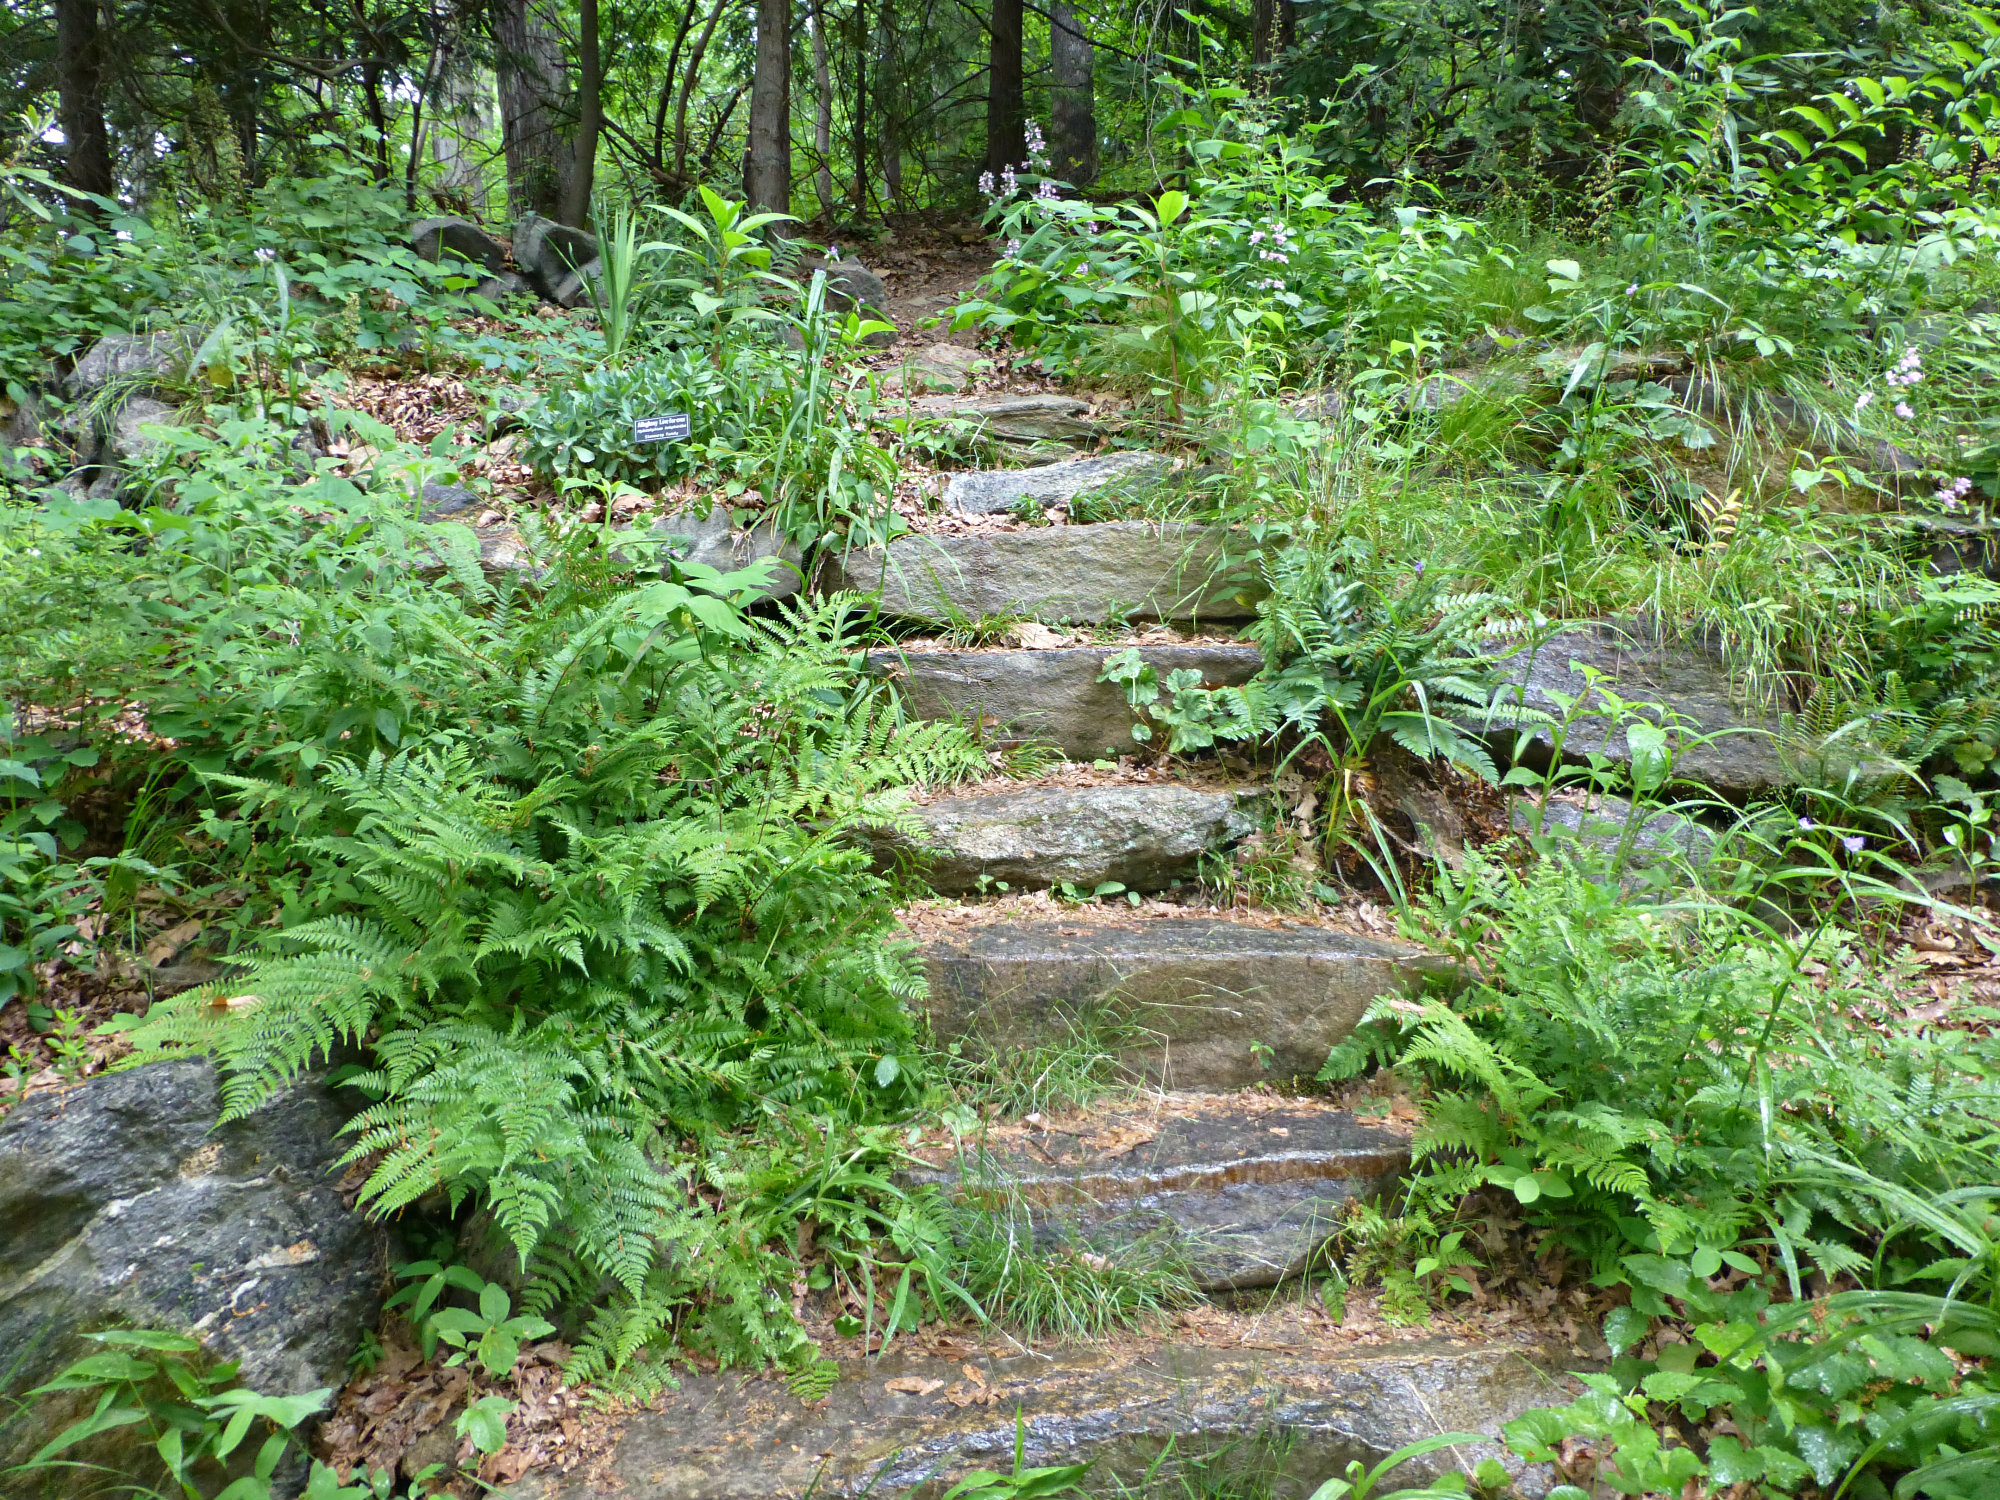 Path of stone steps leading through a forested area with leafy foliage and scattered wildflowers all around